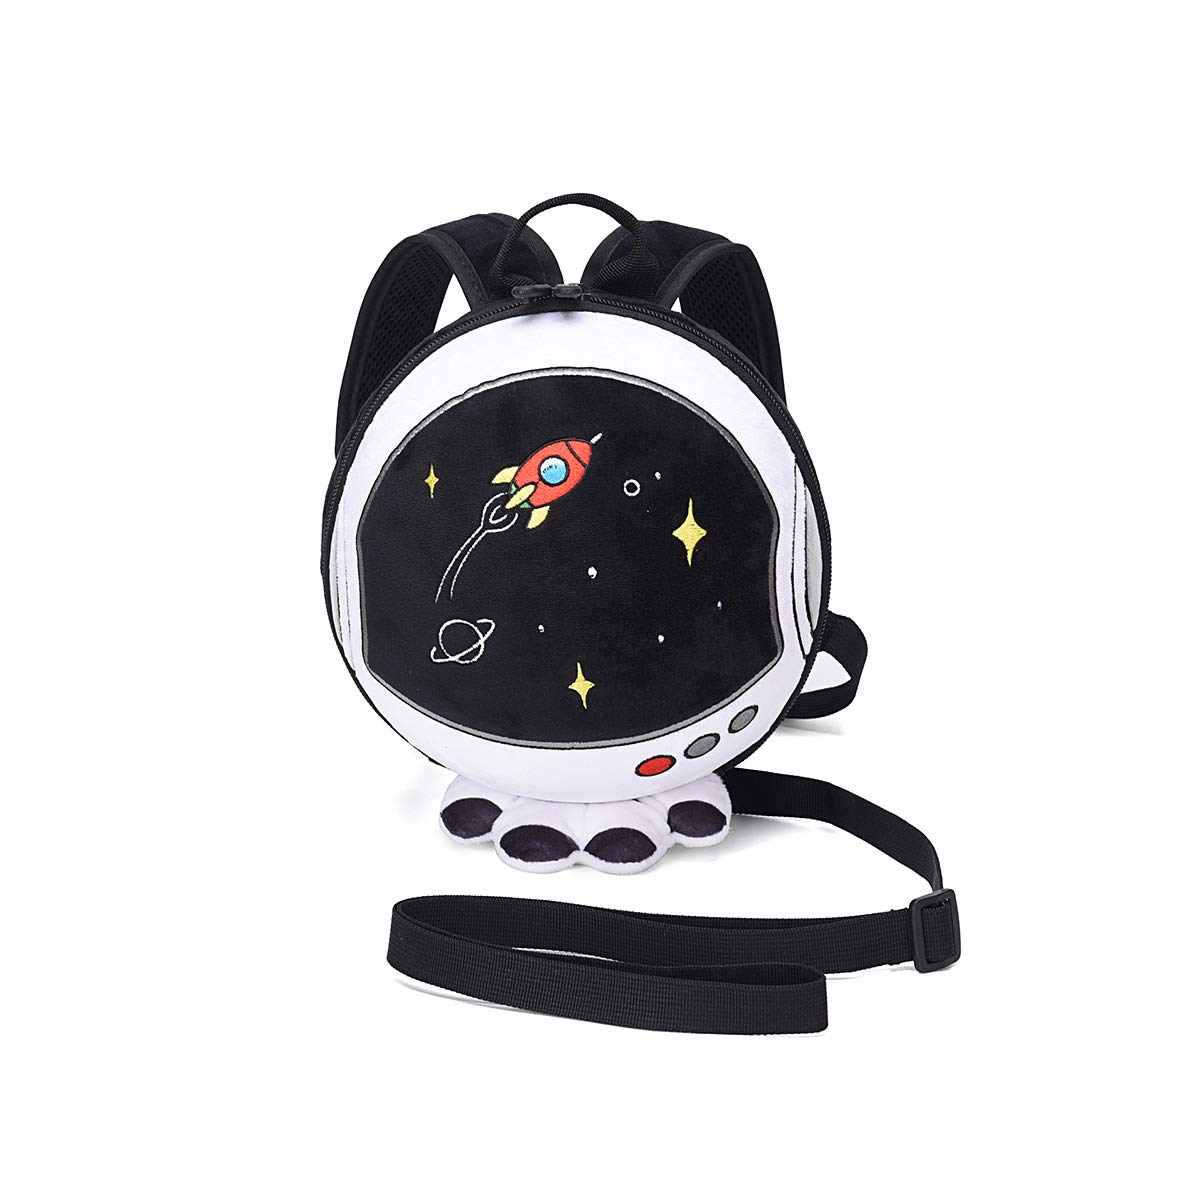 Leash Backpack for Toddler,Kids Backpack Leash with Harness,Baby Leash Backpack Child,Anti Lost Backpack for Boy,Astronaut Backpack Leash for Girl